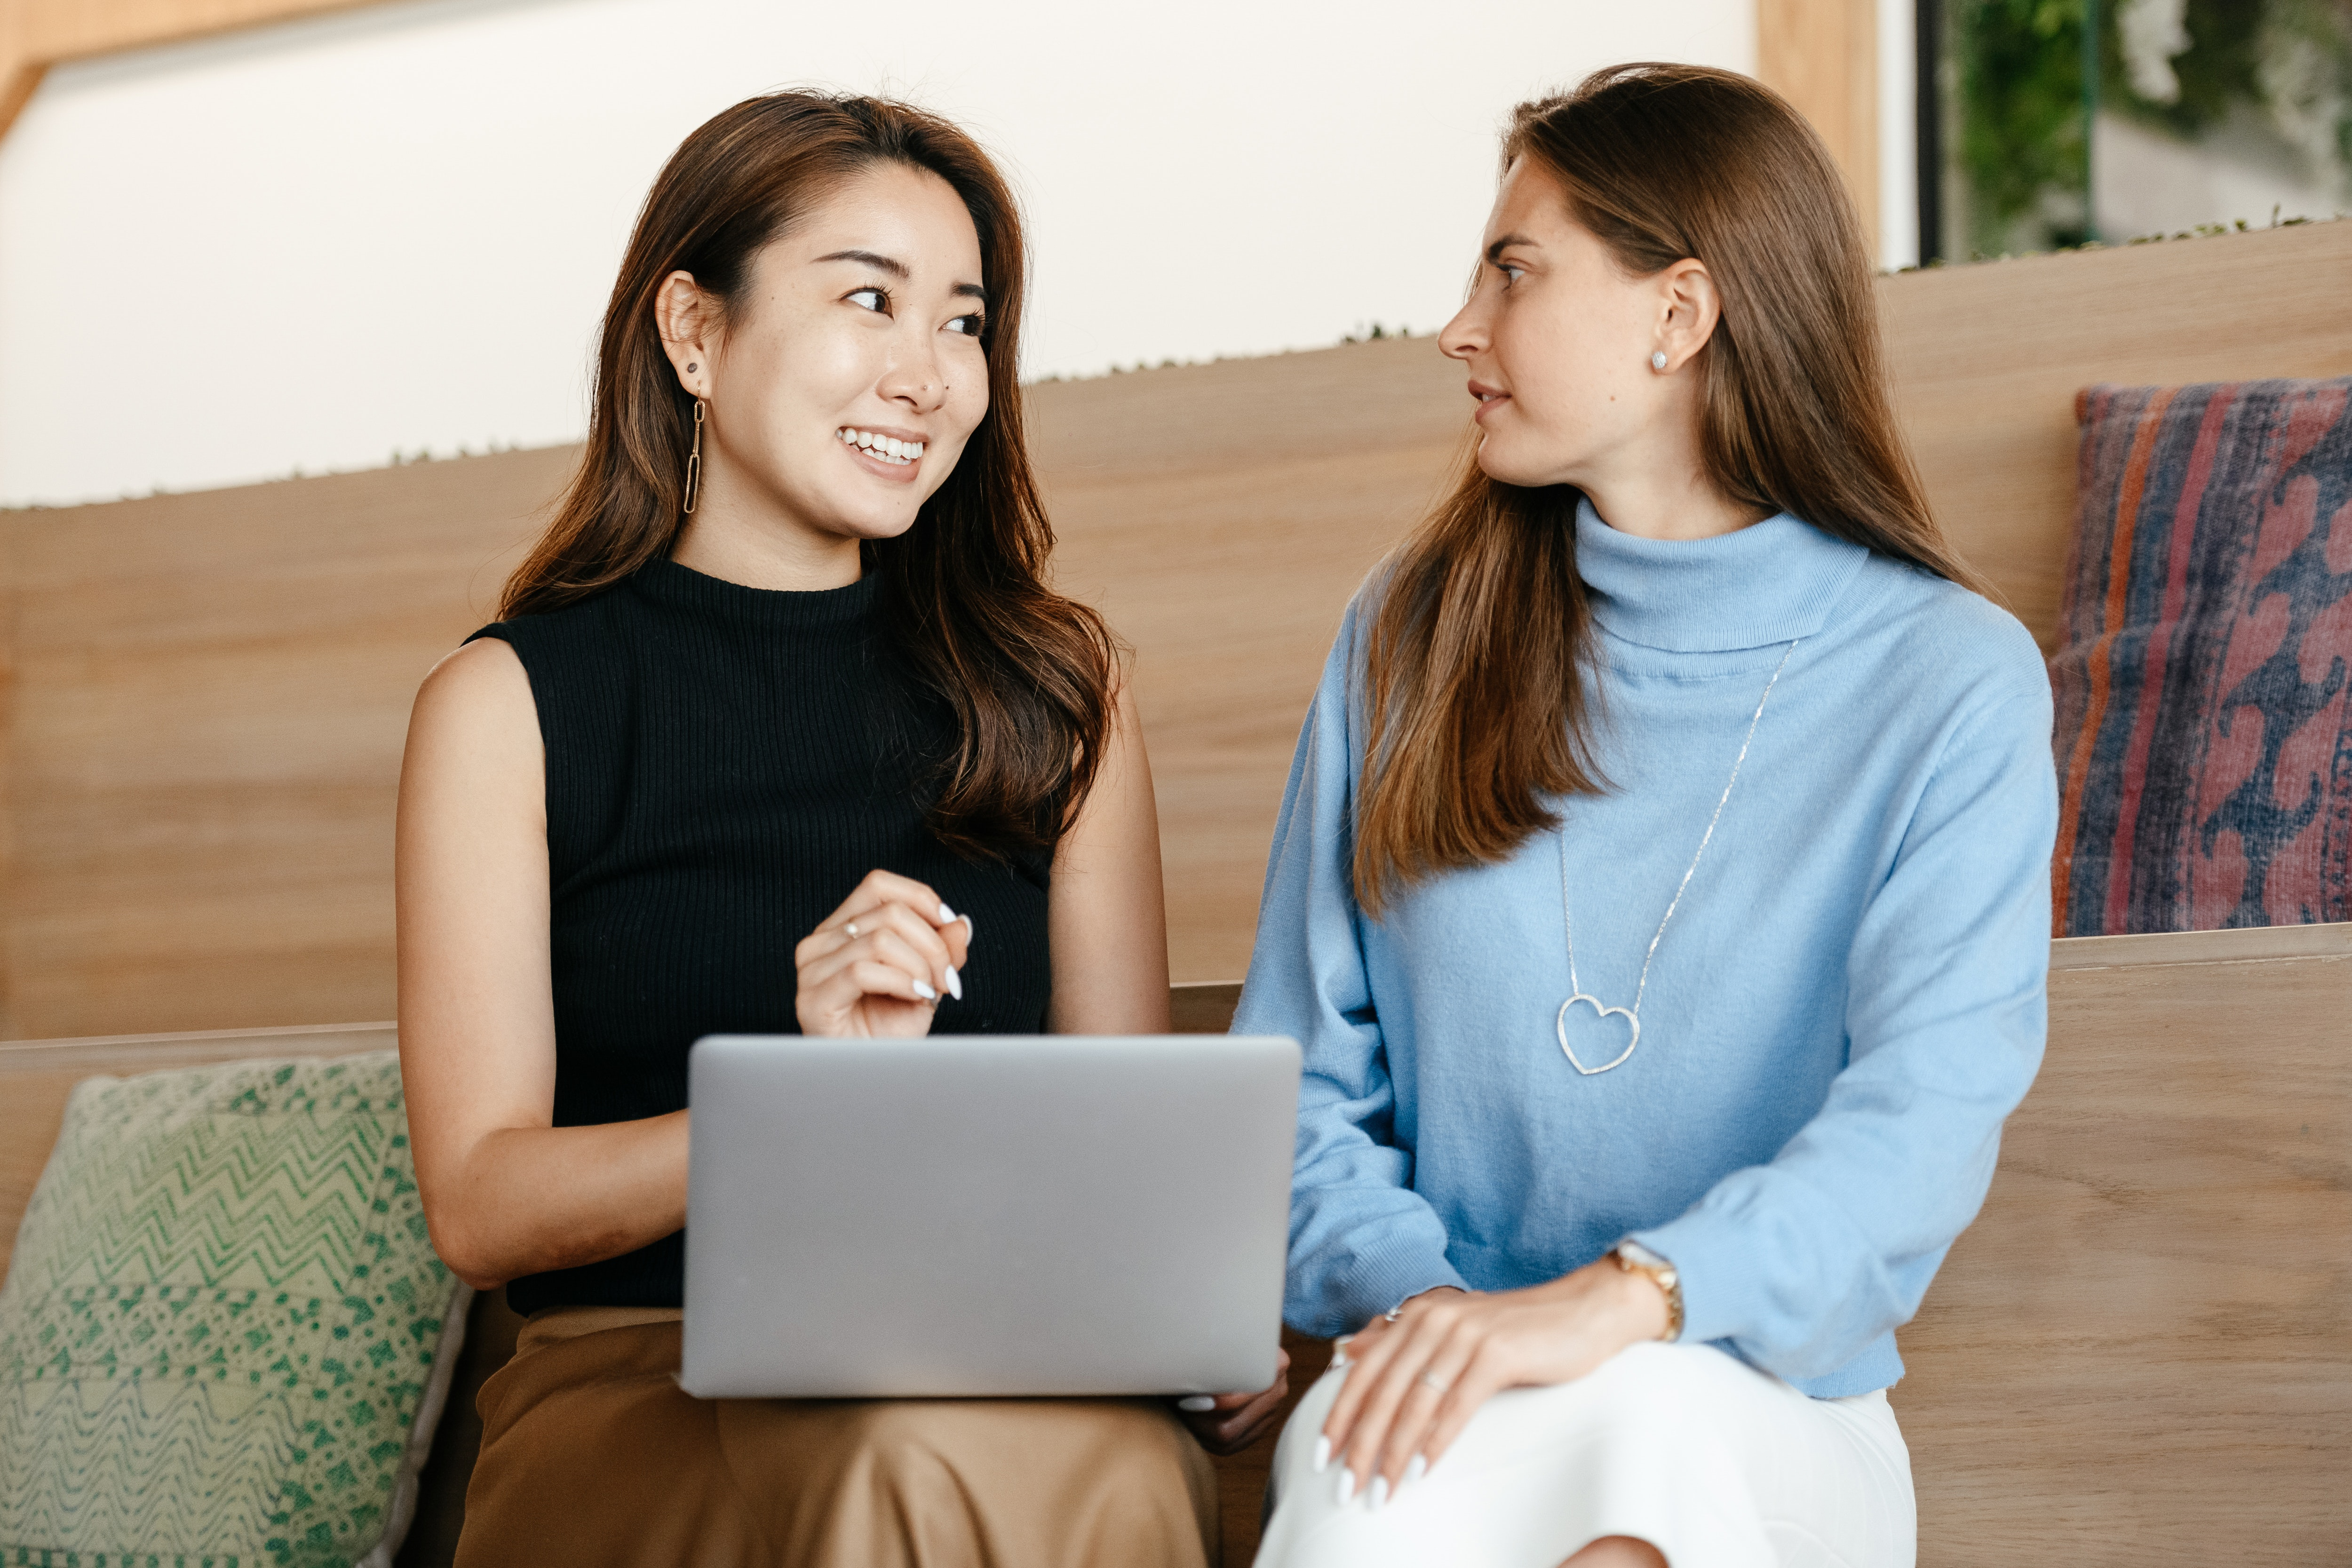 Content cheerful diverse women talking and using laptop